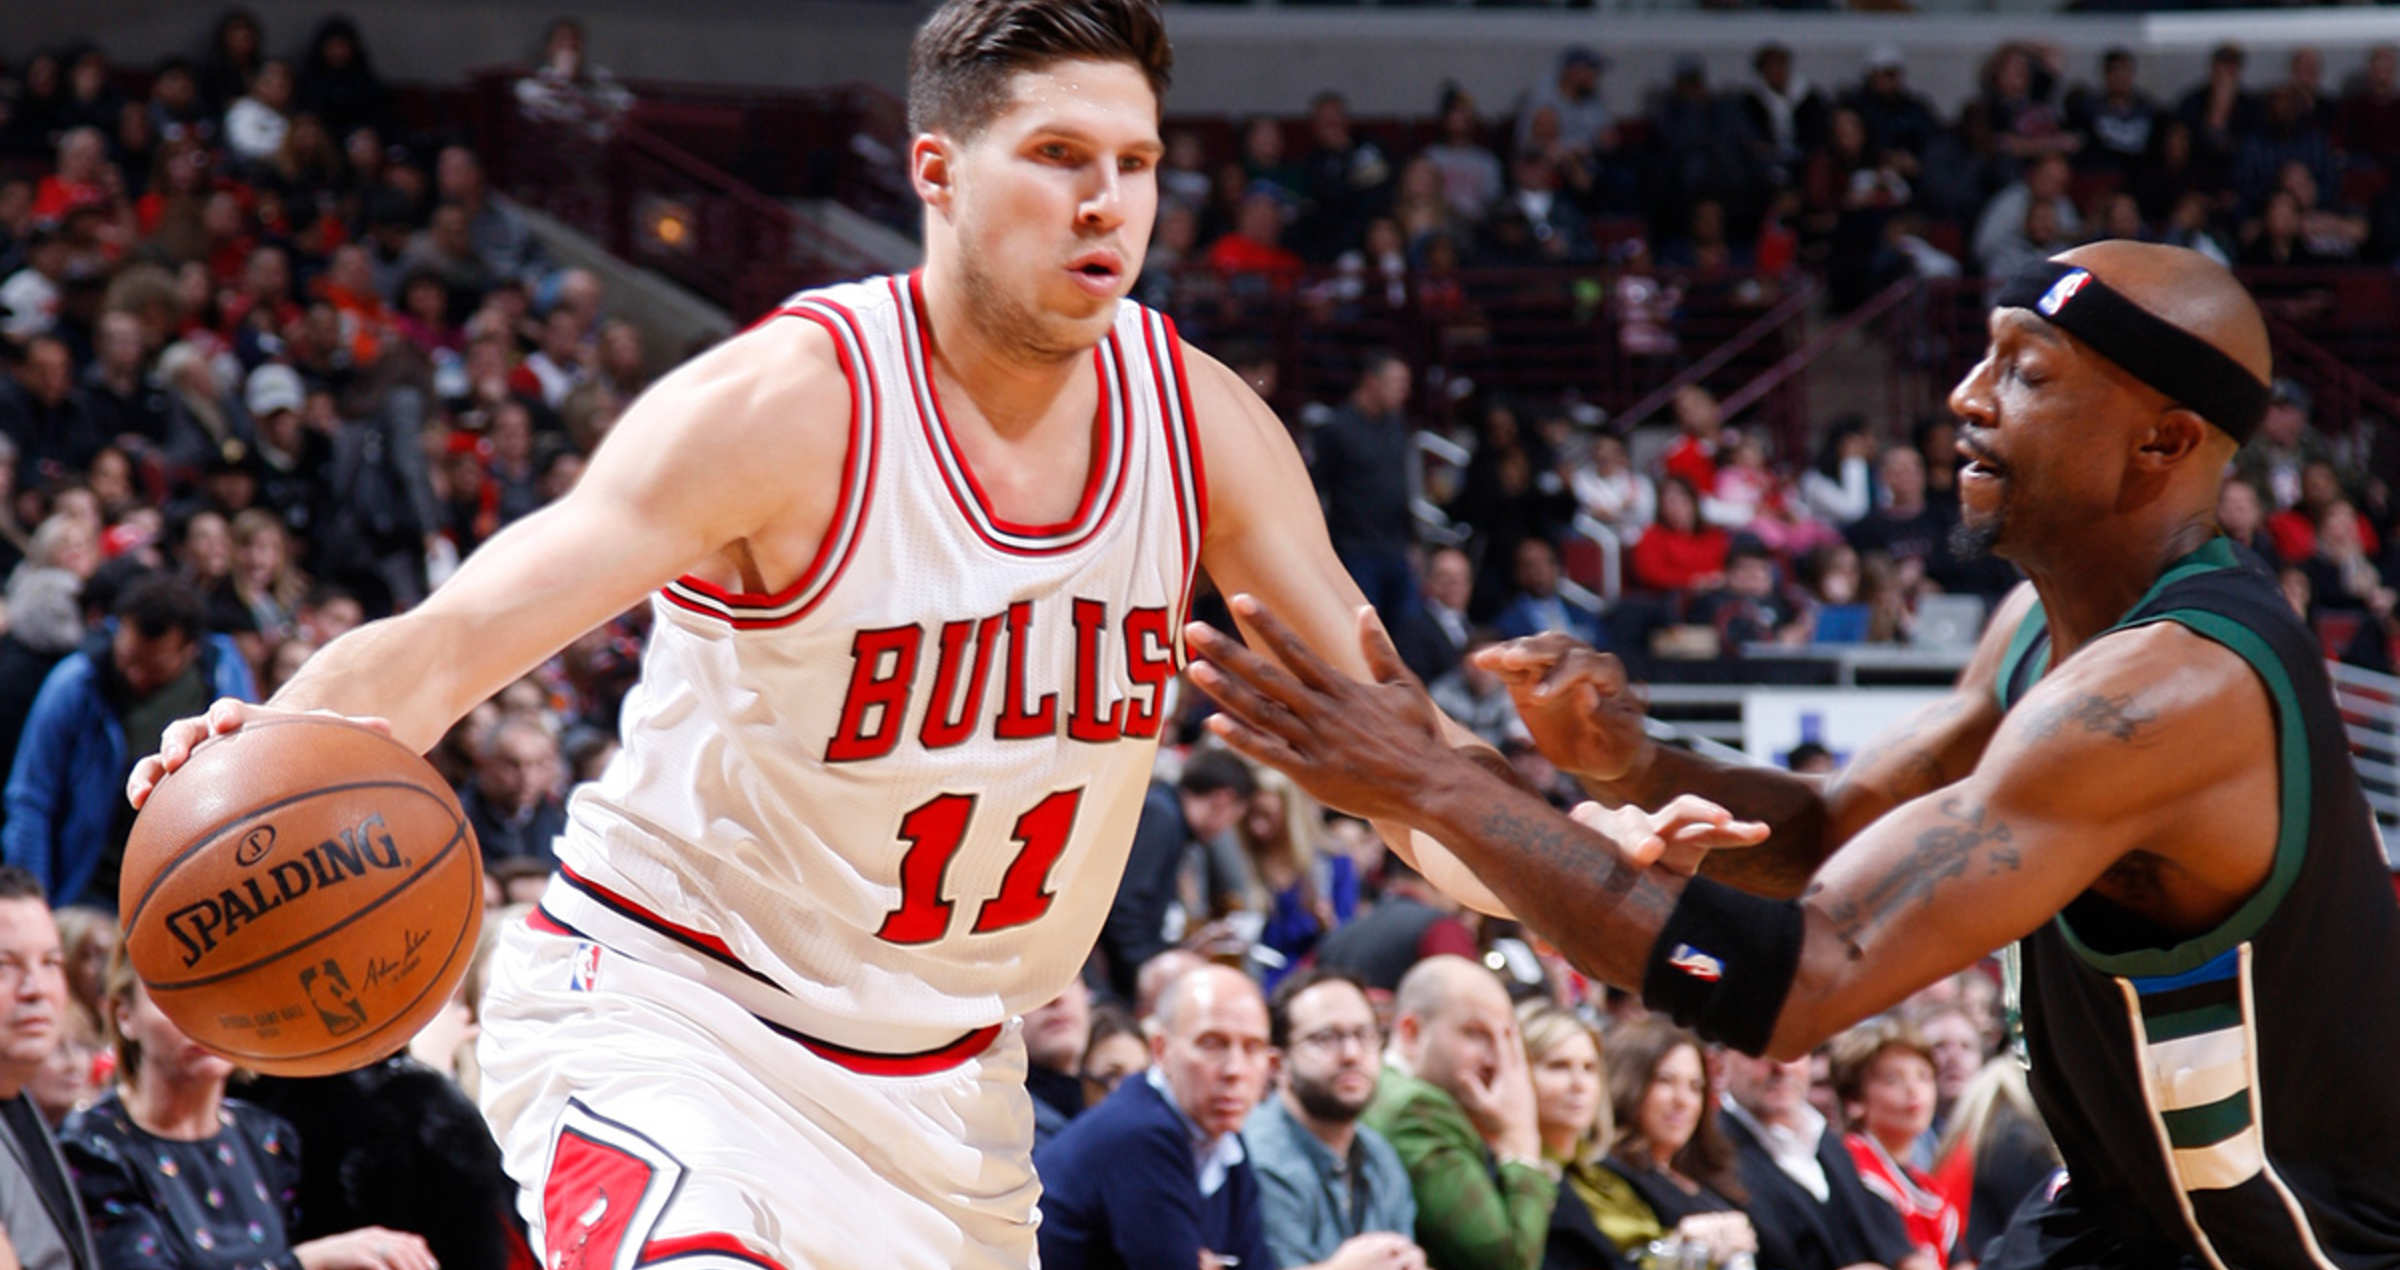 Doug McDermott vs. Bucks